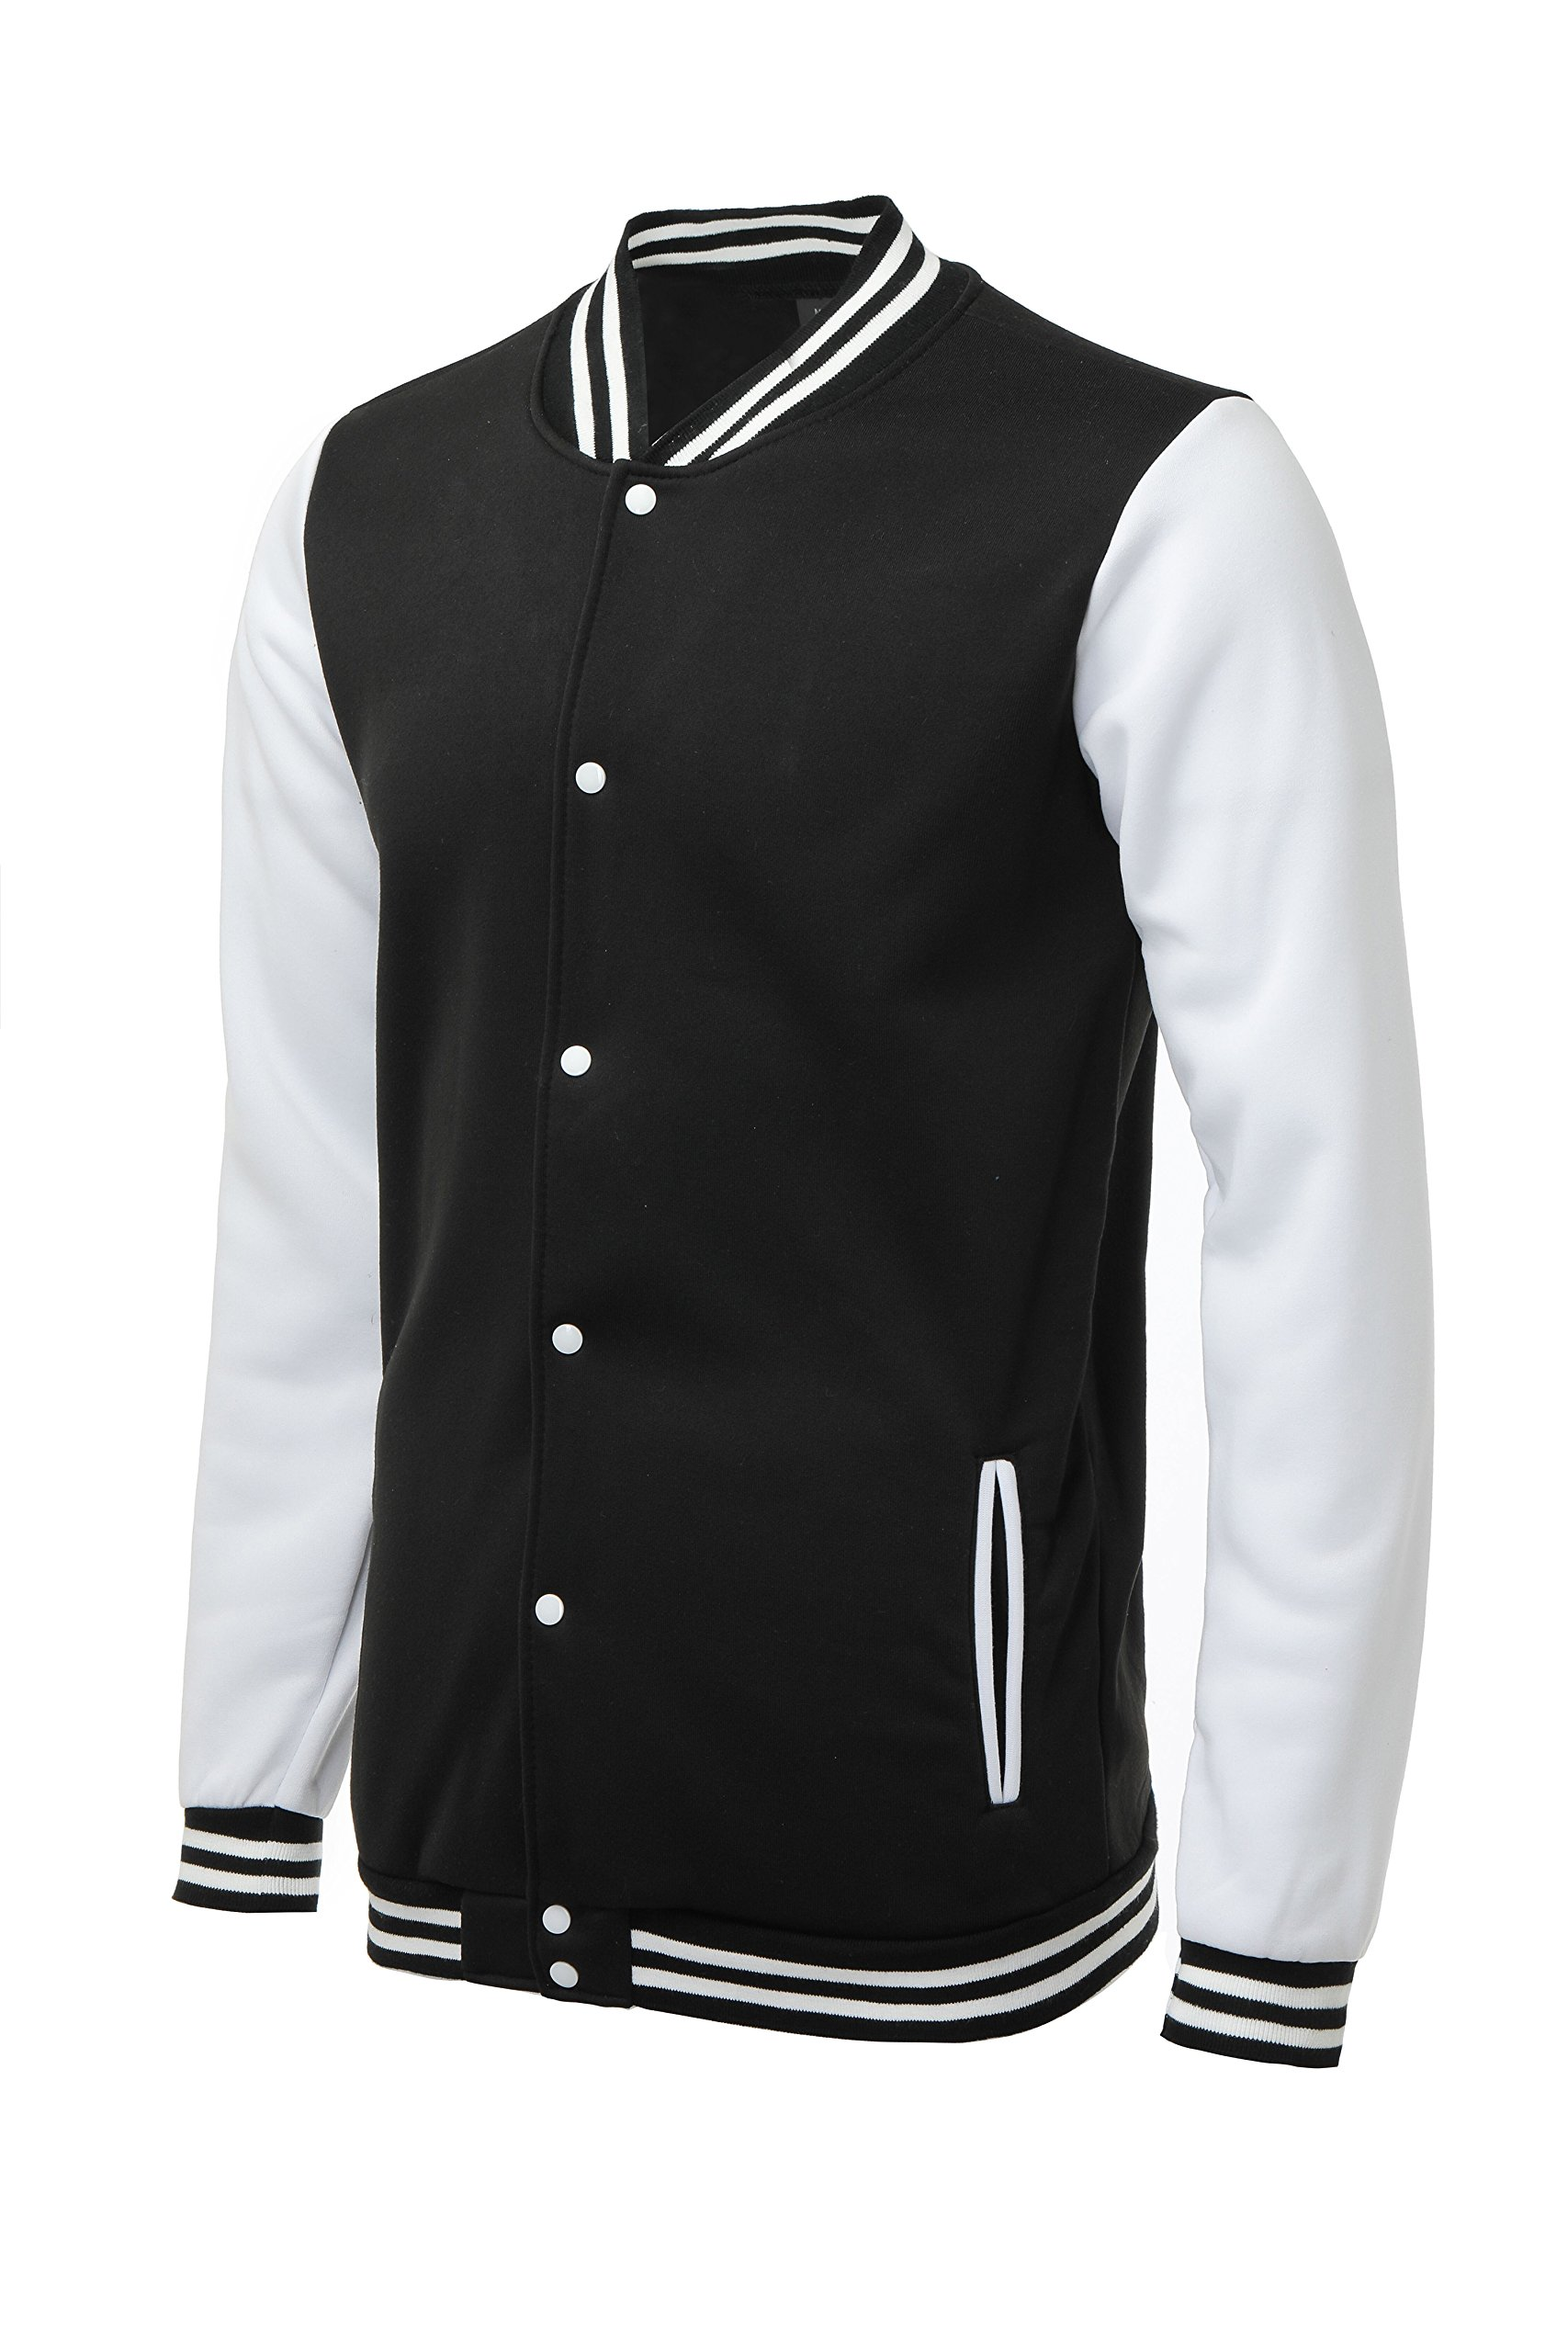 Trifuness Varsity Jacket Letterman Jacket Baseball Jacket With Long Sleeve Banded Collar Black Large by Trifuness